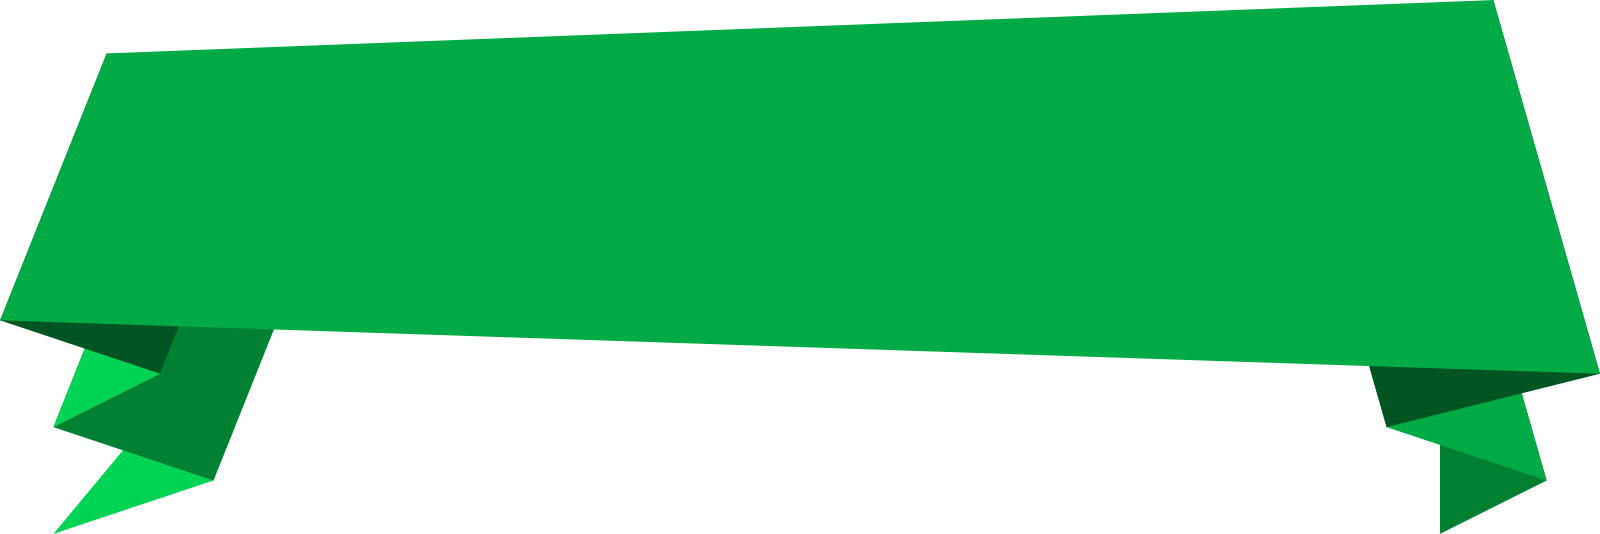 Green banner png. Transparent pictures free icons